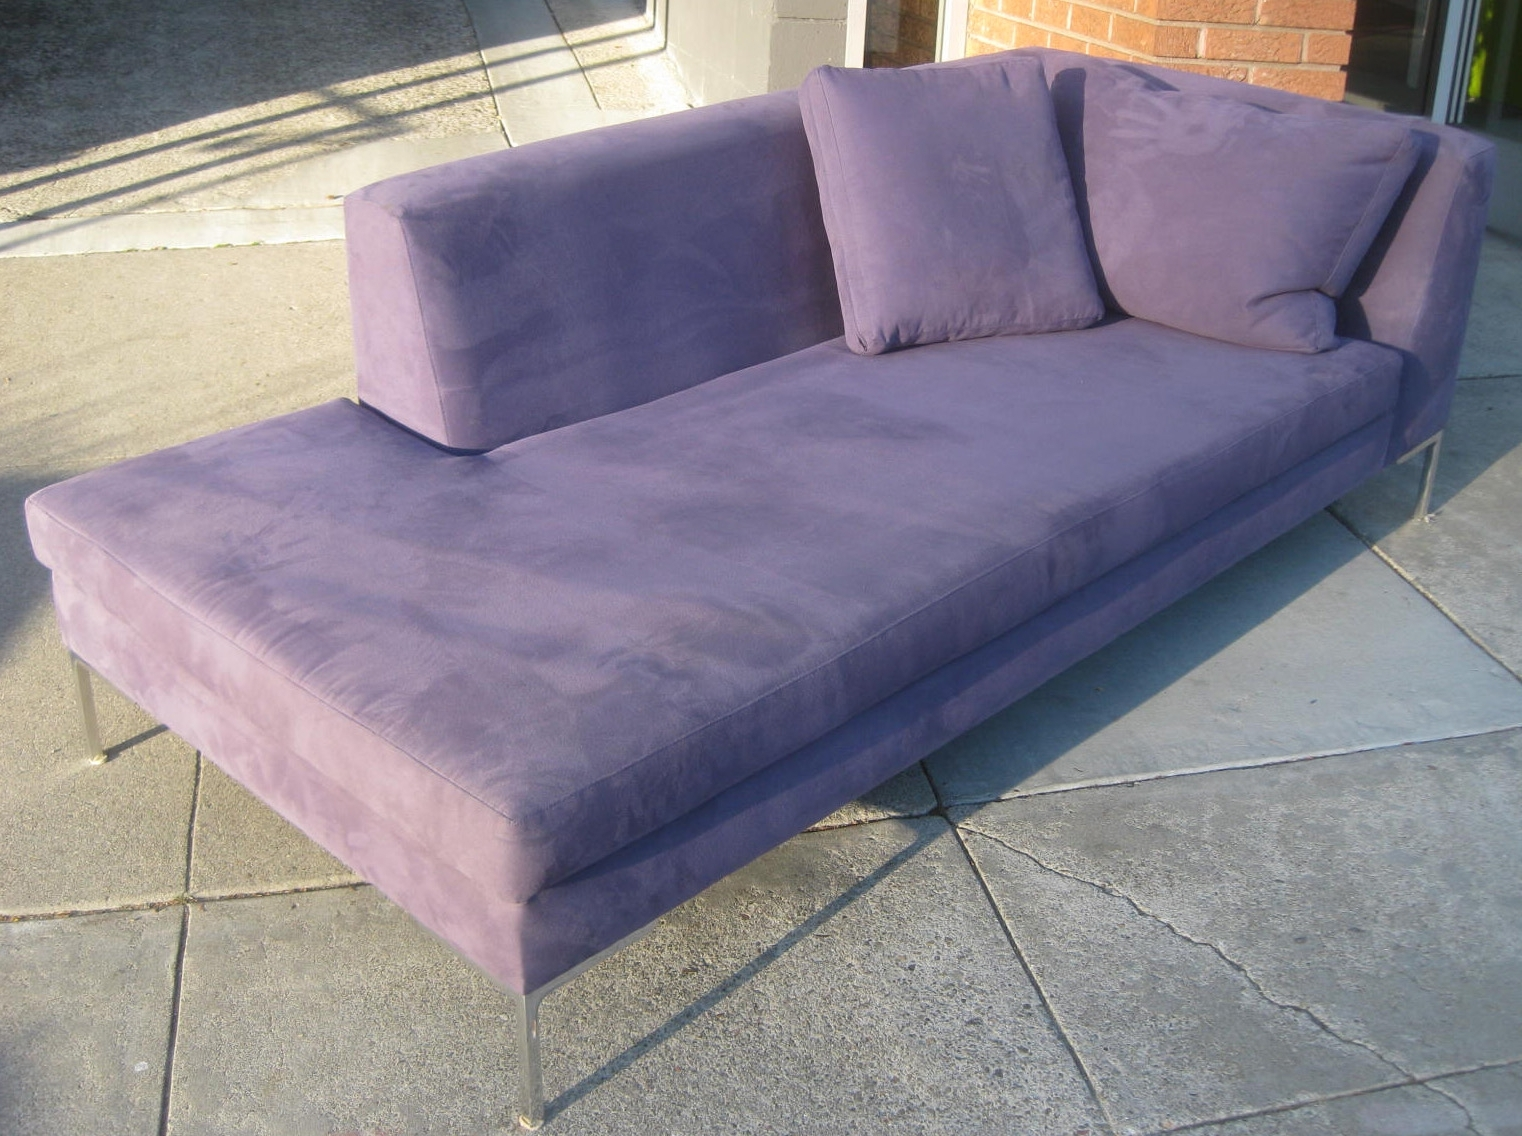 Purple Chaise Lounges Inside Most Recent Uhuru Furniture & Collectibles: Sold  Purple Chaise Lounge + (View 9 of 15)